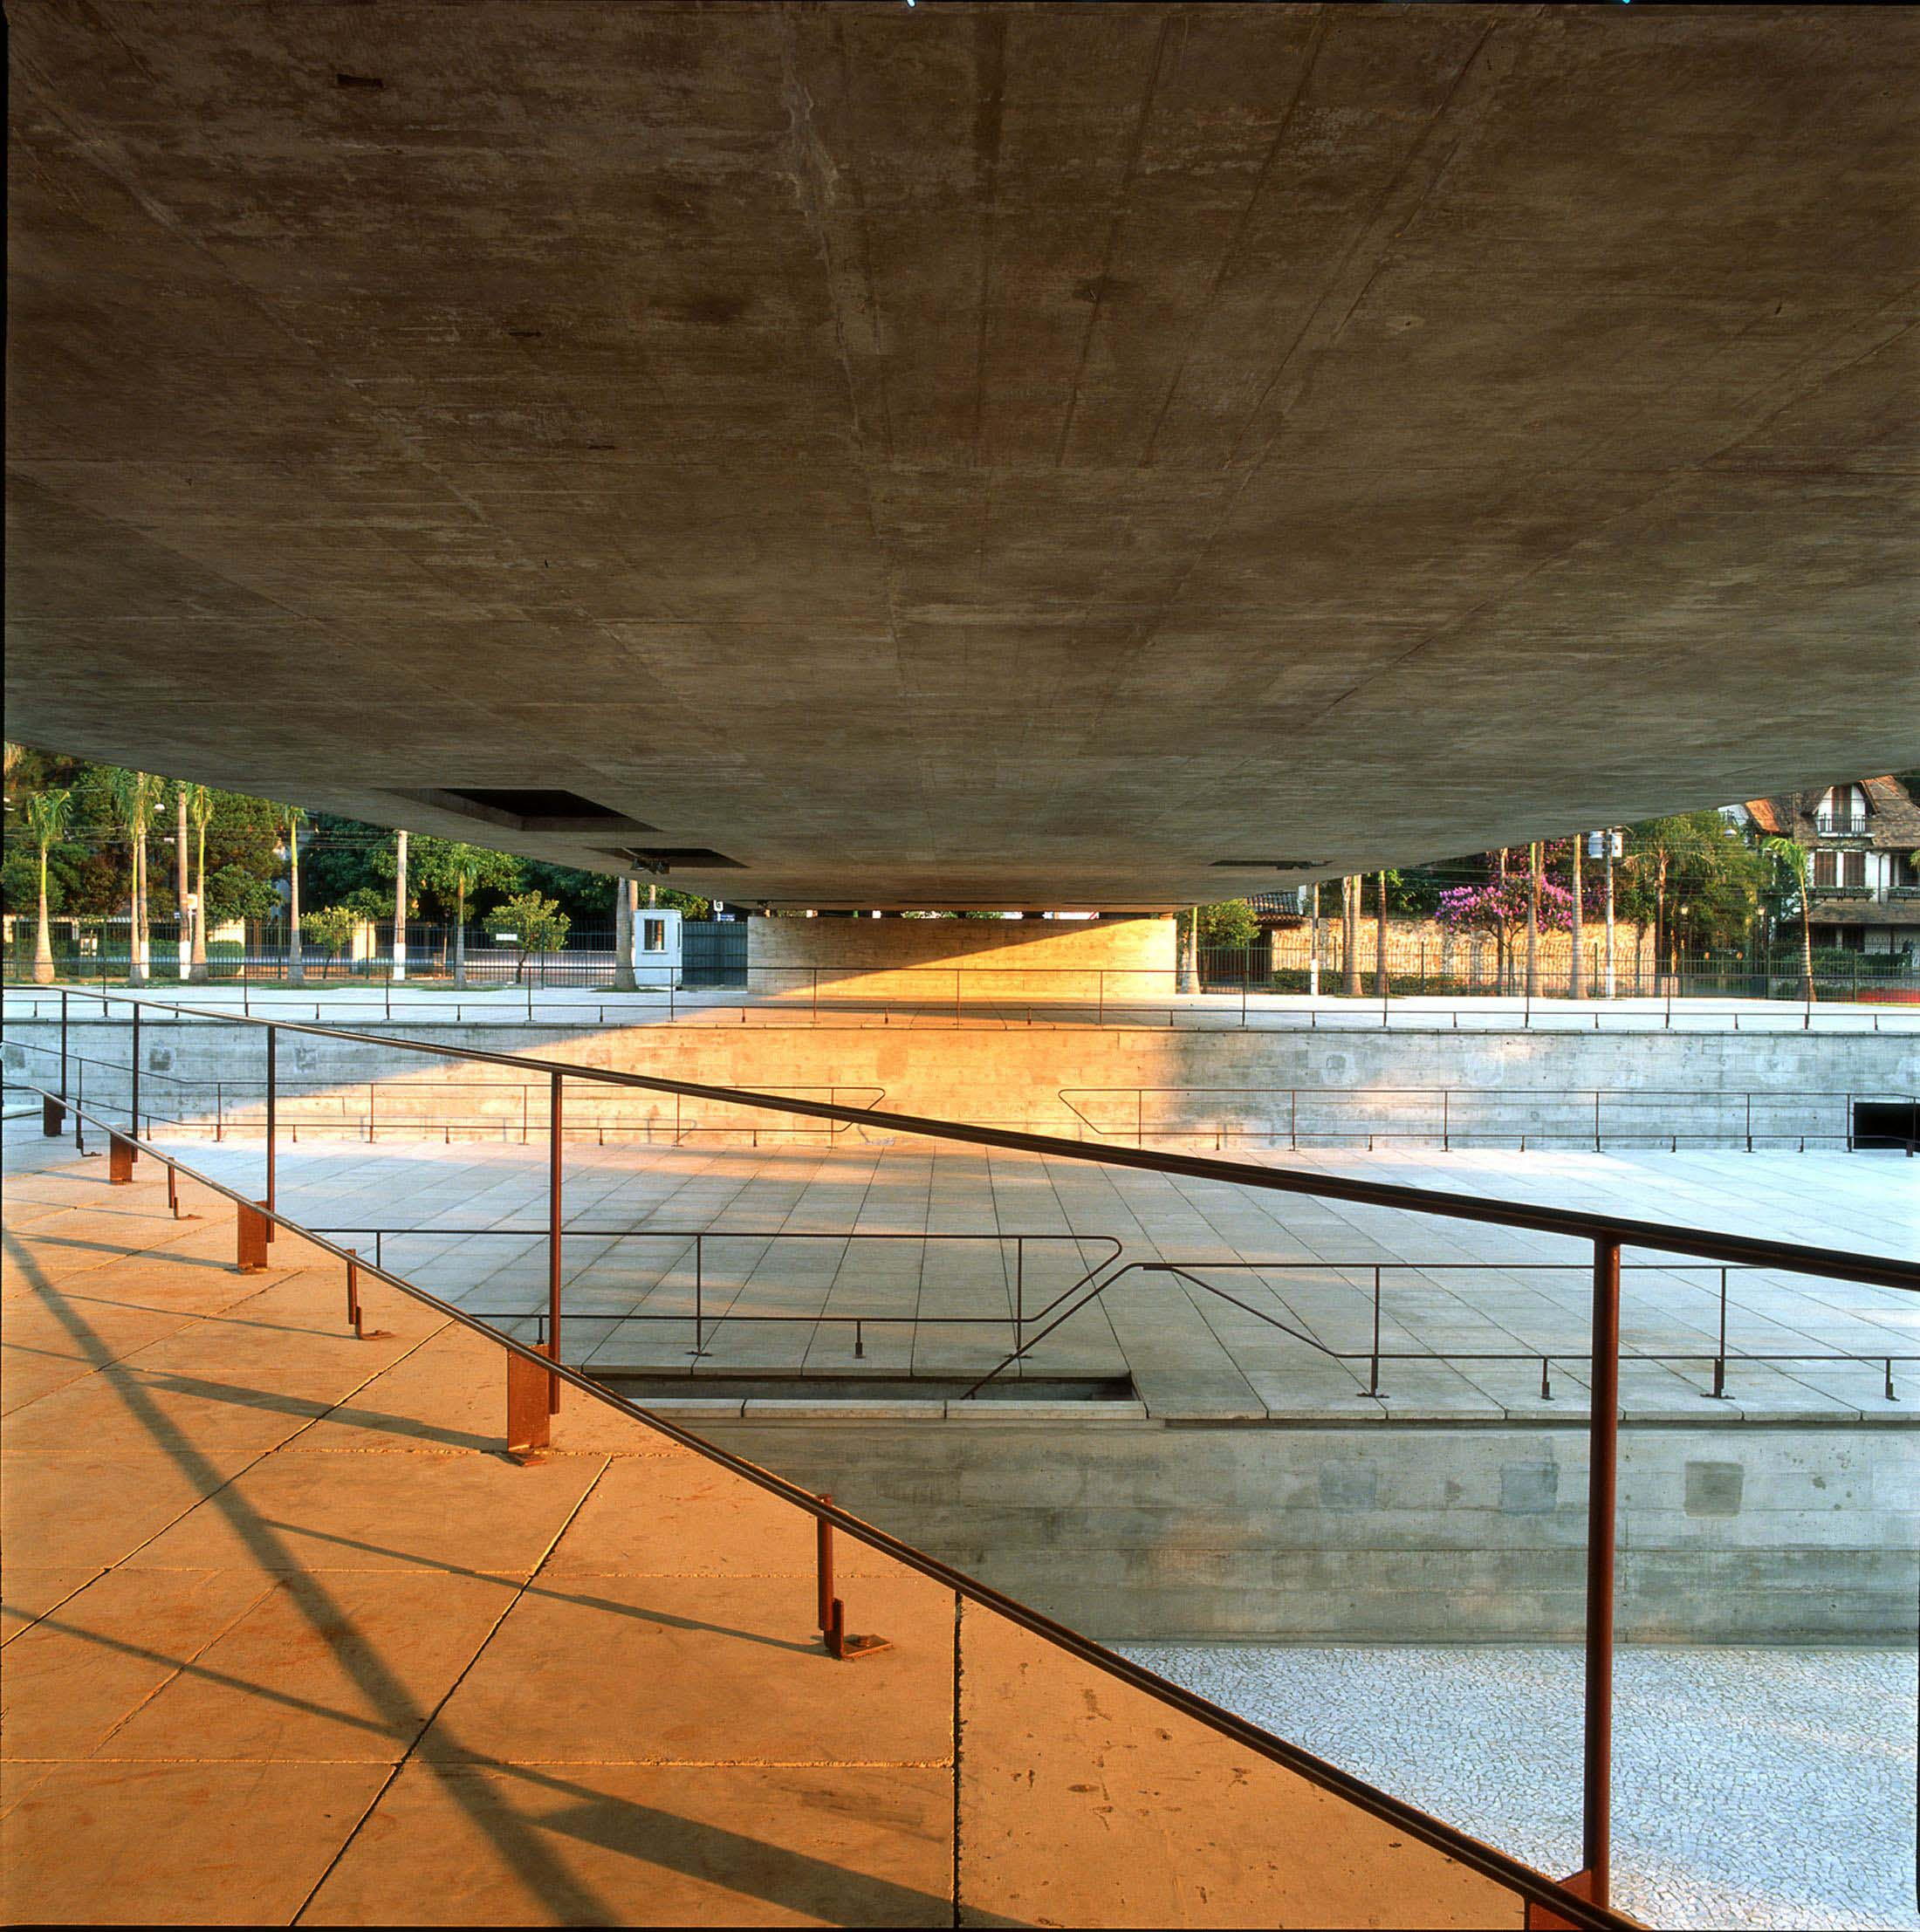 MUSEU - SÃO PAULO - CAD - A VIEW OF THE AMPHITHEATRE UNDER THE PORTICO AT THE BRAZILIAN MUSEUM OF SCULPTURE IN SAO PAULO, DESIGNED IN 1988  BY BRAZILIAN ARCHITECT PAULO MENDES DA ROCHA, IS SHOWN IN THIS UNDATED PUBLICITY PHOTOGRAPH. MENDES DA ROCHA HAS WON THE 2006 PRITZKER ARCHITECTURE PRIZE FOR HIS HALF CENTURY OF WORK, WHICH BROUGHT BEAUTY AND ORDER TO A GRITTY AND CHAOTIC SAO PAULO. MENDES DA ROCHA, 77, IS THE SECOND BRAZILIAN TO WIN THE SO-CALLED 'NOBEL FOR ARCHITECTURE' AFTER OSCAR NIEMEYER WON THE AWARD IN 1988. REUTERS/NELSON KON/PRITZKER ARCHITECTURE PRIZE/HANDOUT